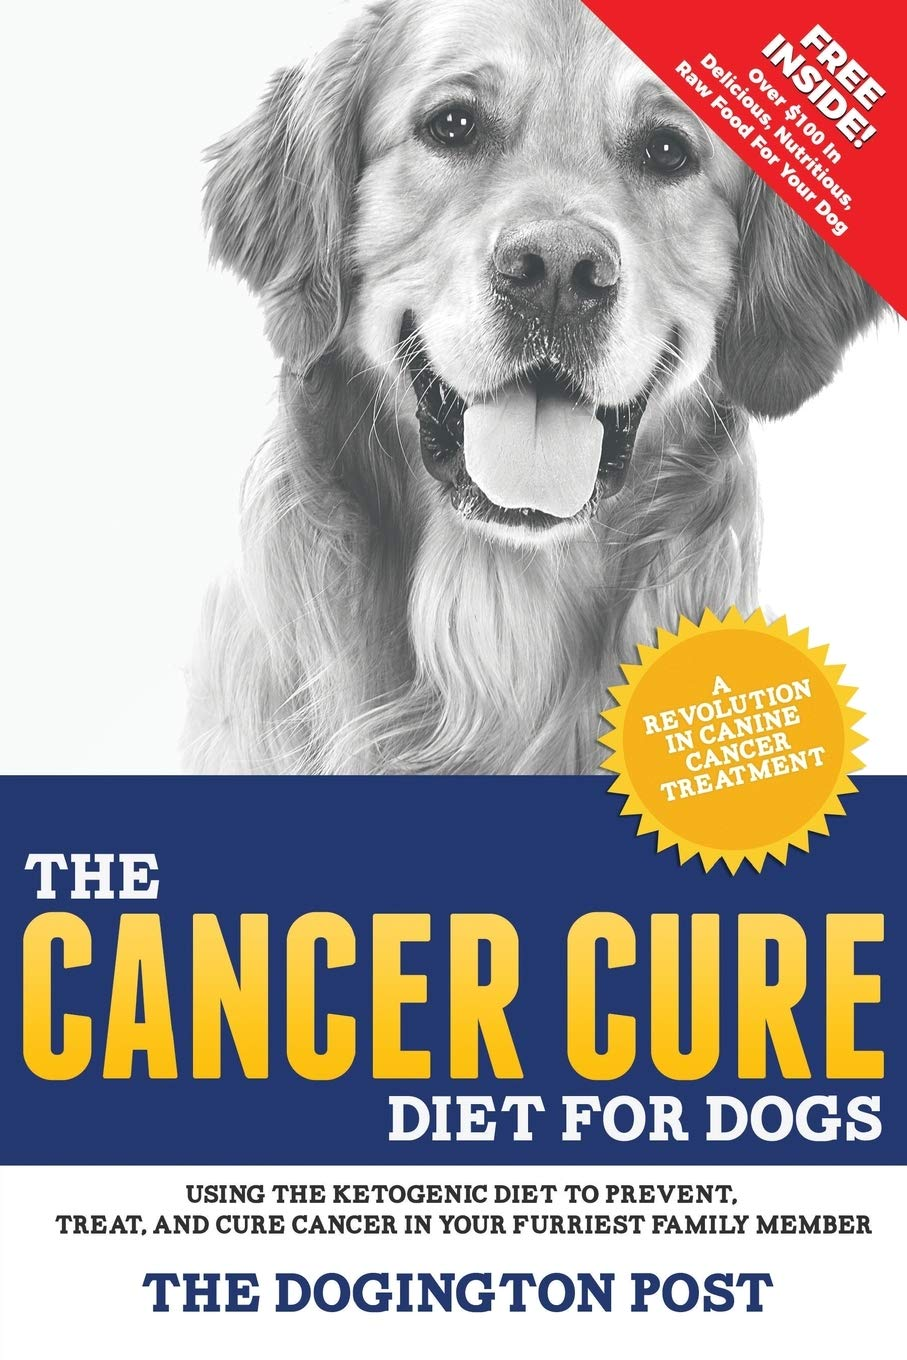 The Cancer Cure Diet for Dogs: Using the Ketogenic Diet to Prevent, Treat, and Cure Cancer in Your Furriest Family Member 1